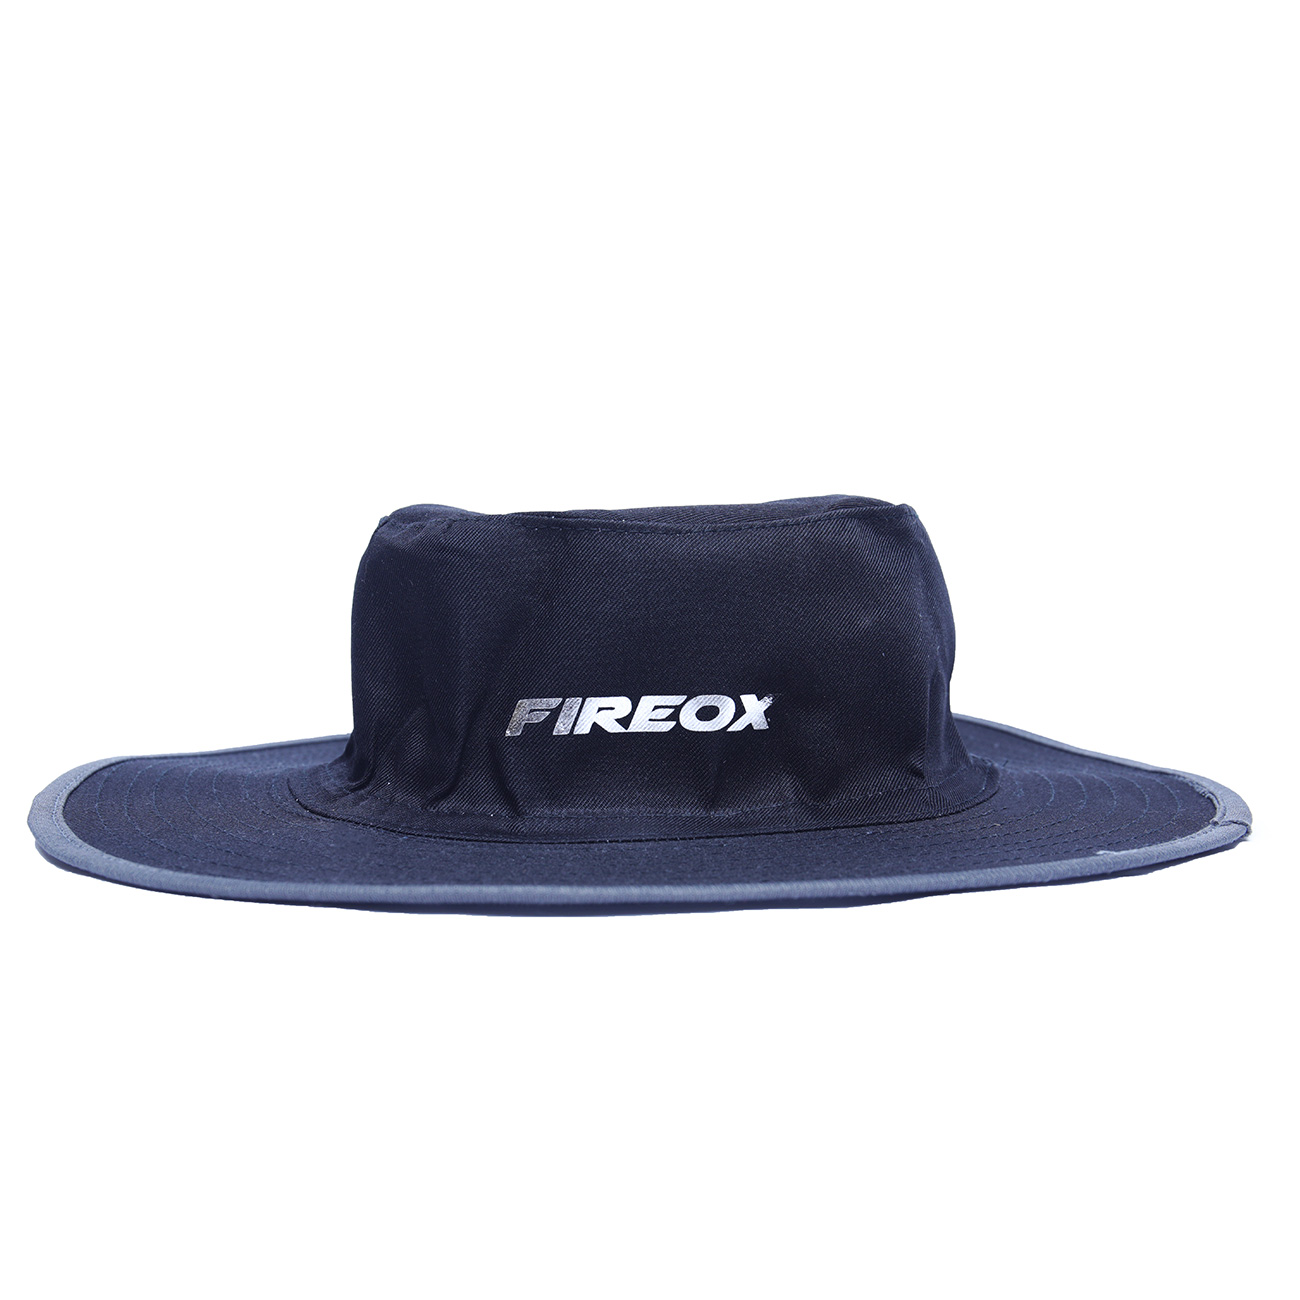 Home   Apparel   Hats   FIREOX Round Hat 48c22b42576